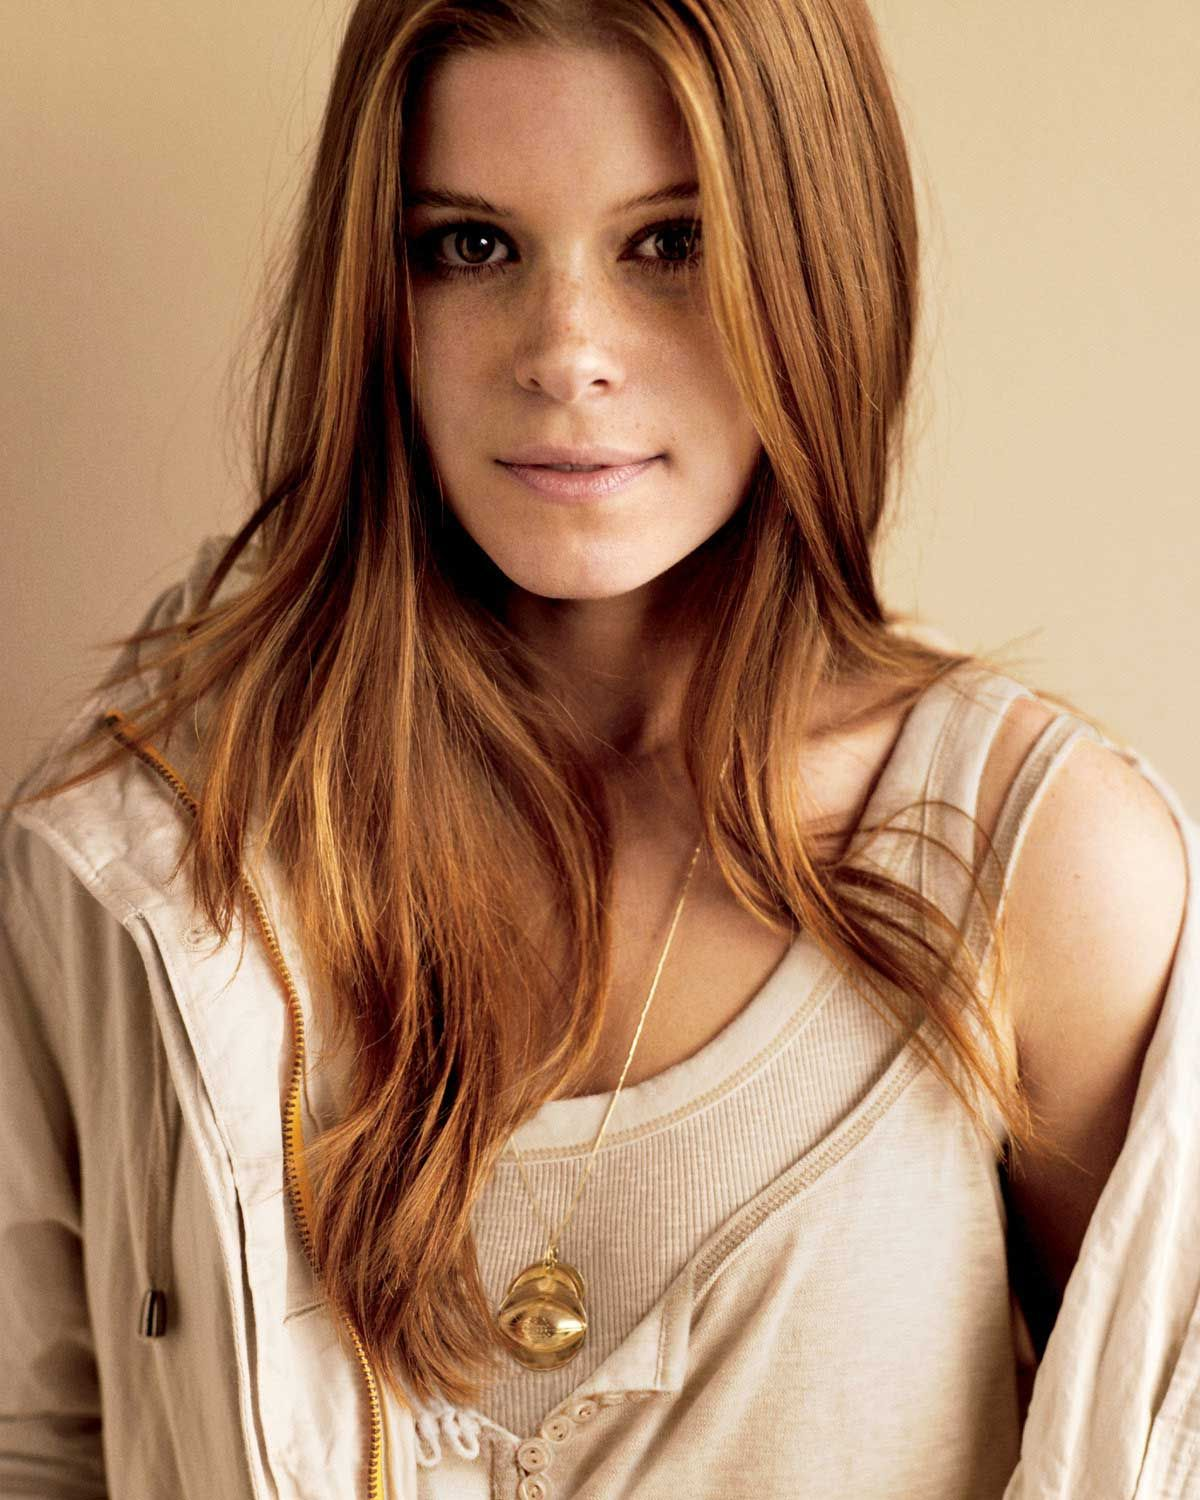 The 20 Ultimate Girl Next Door Actresses According To Google Gallery Kate Mara Beauty Redheads